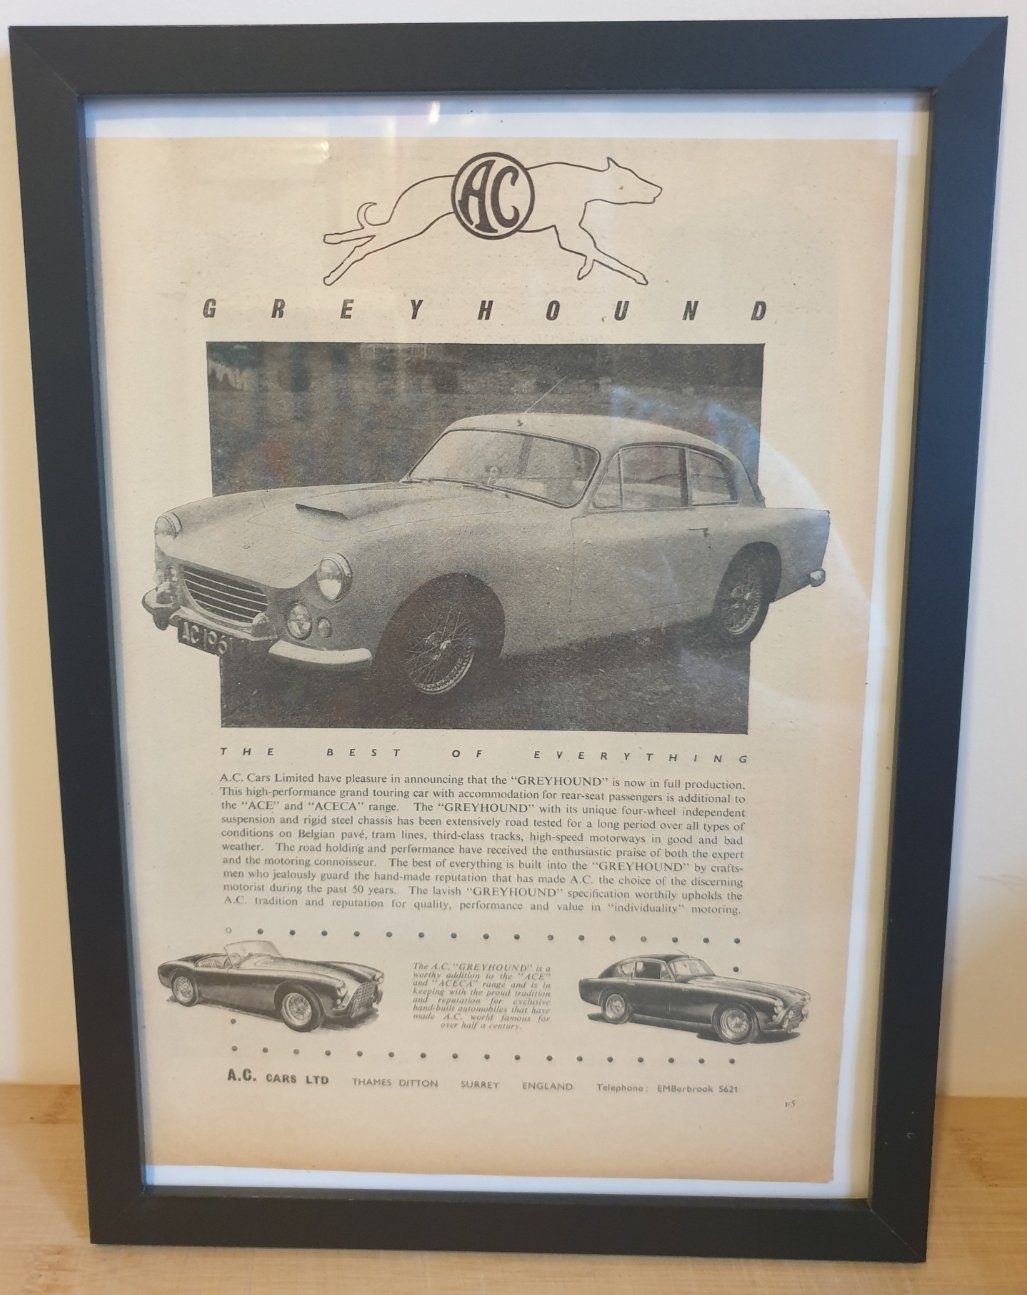 1986 Original 1960 AC Greyhound Framed Advert  For Sale (picture 1 of 3)